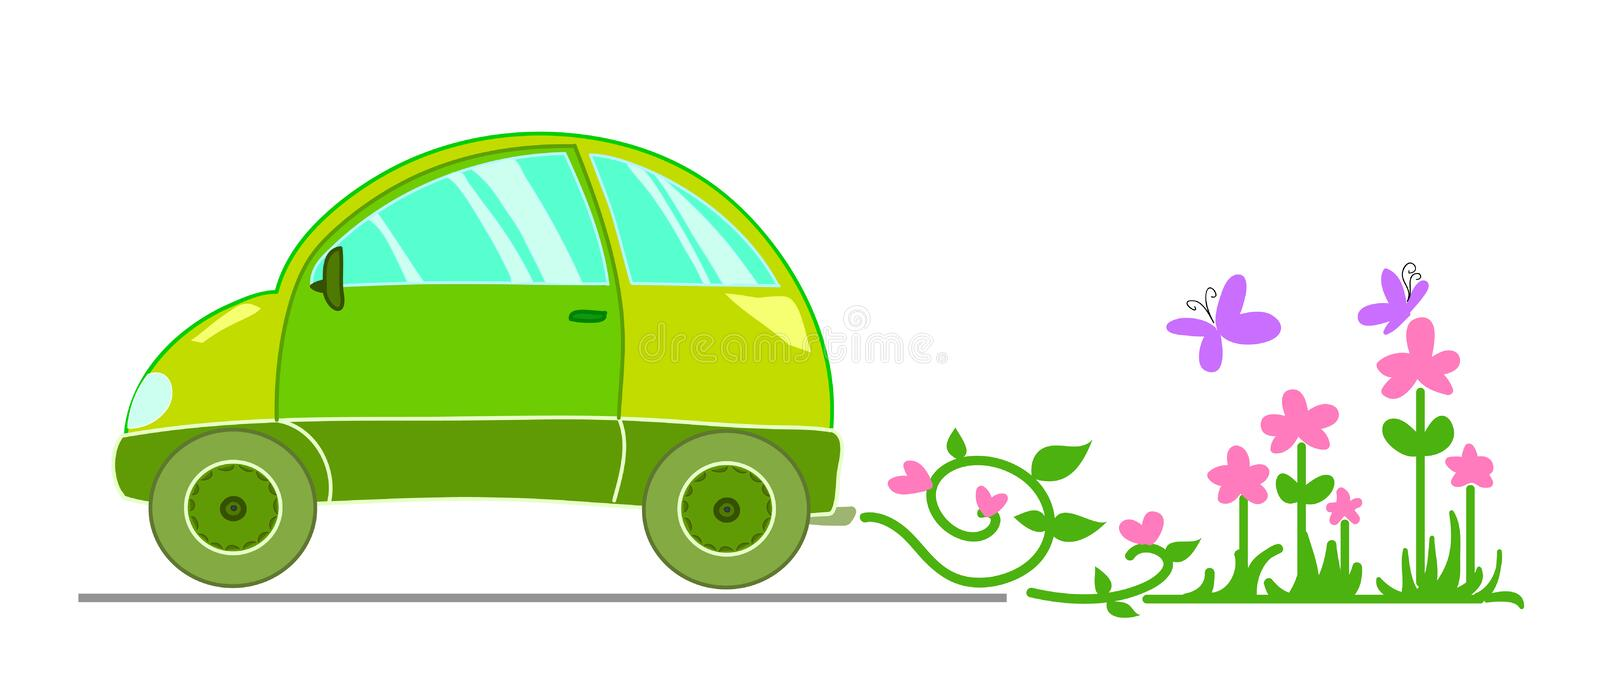 Ecological car. Ecological illustration with stylized green car. Vector image